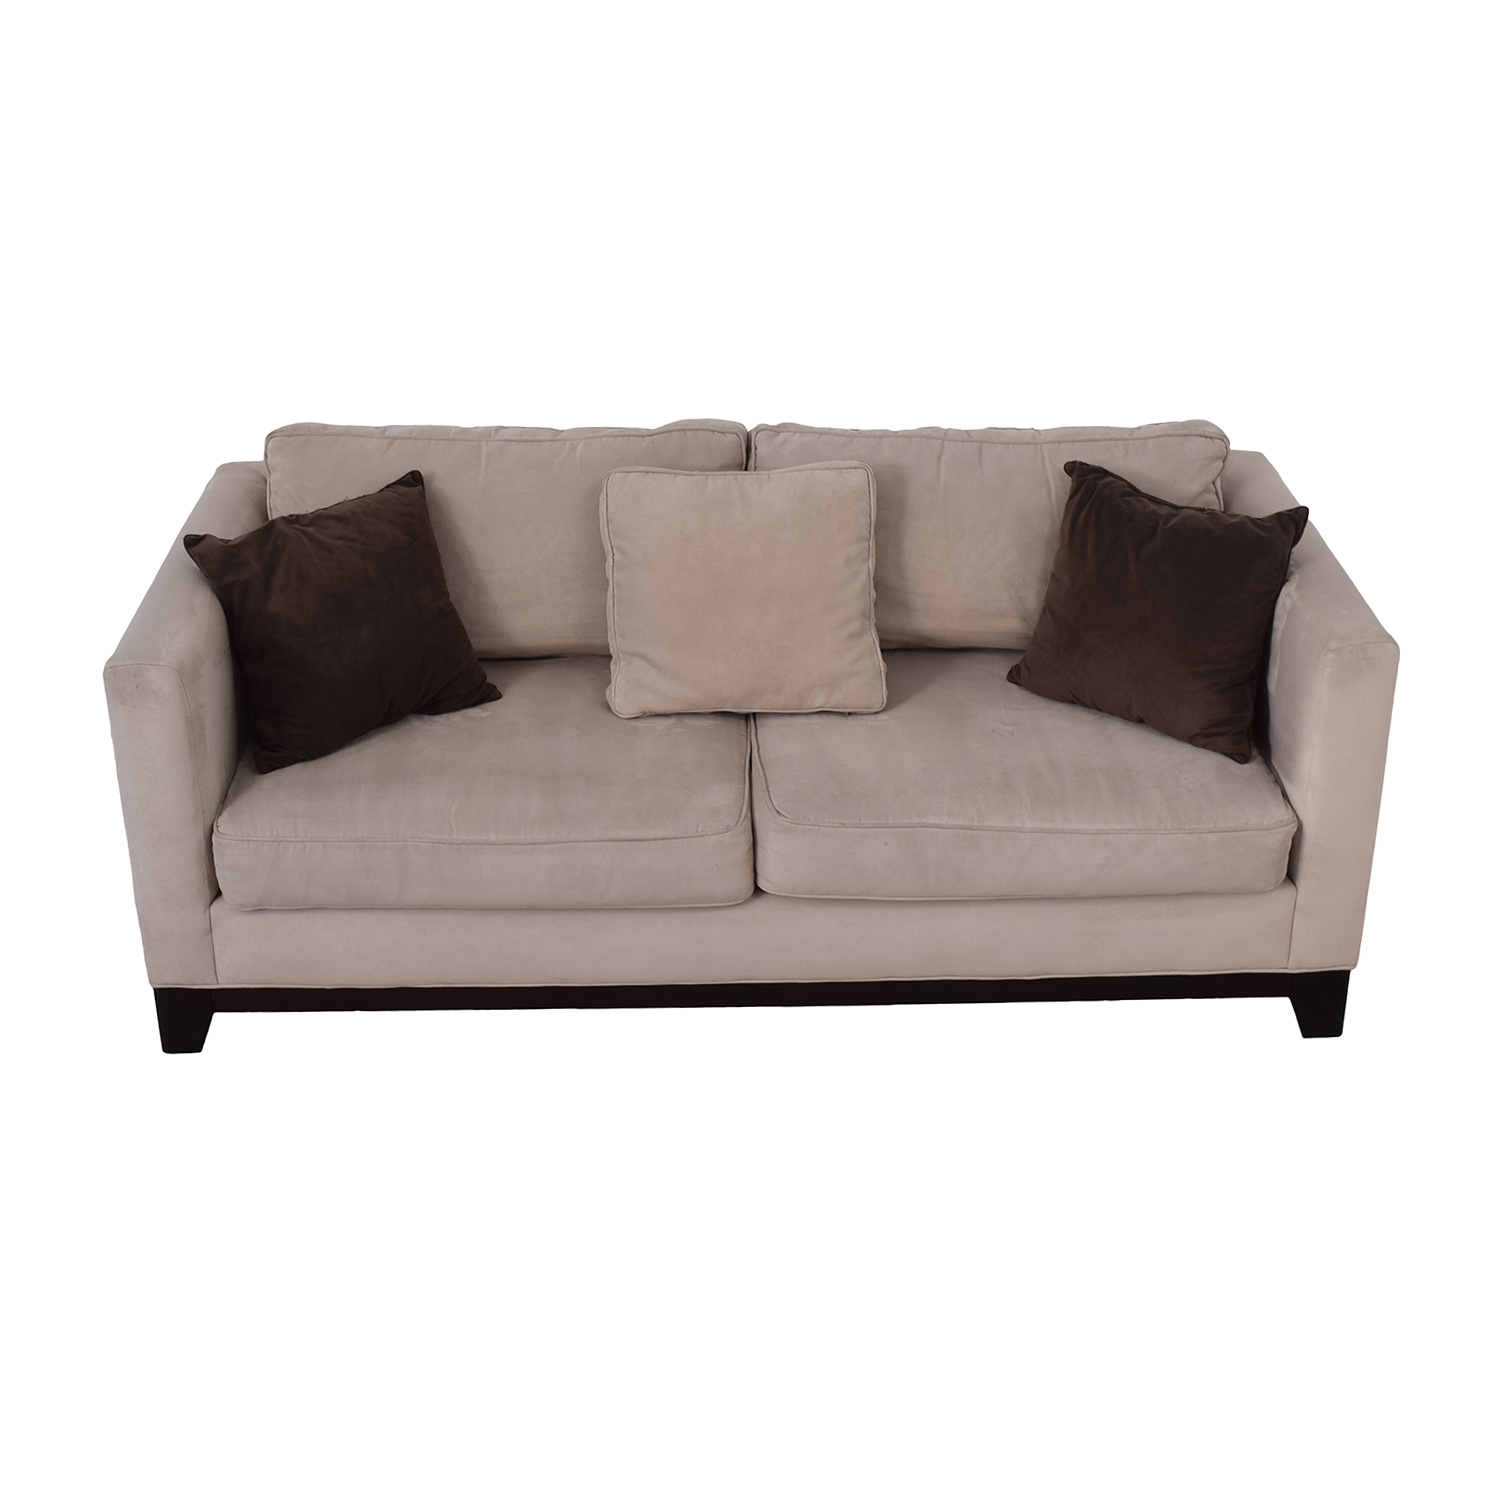 Bauhaus Bauhaus Beige Microsuede Couch with Toss Pillows on sale